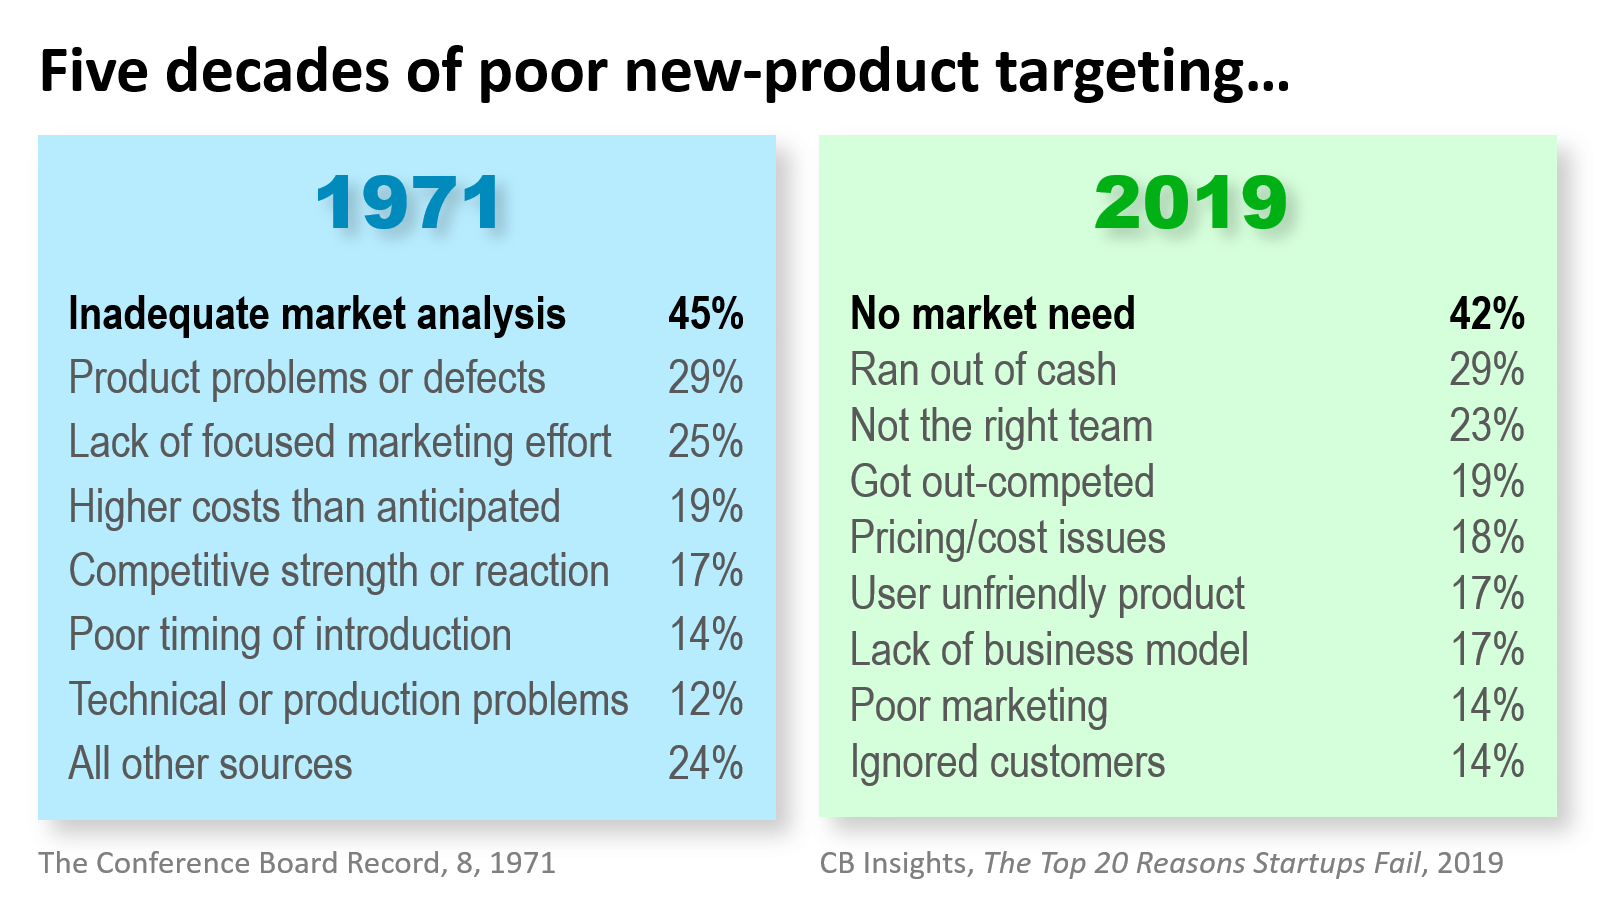 Five-decades-of-poor-new-product-targeting